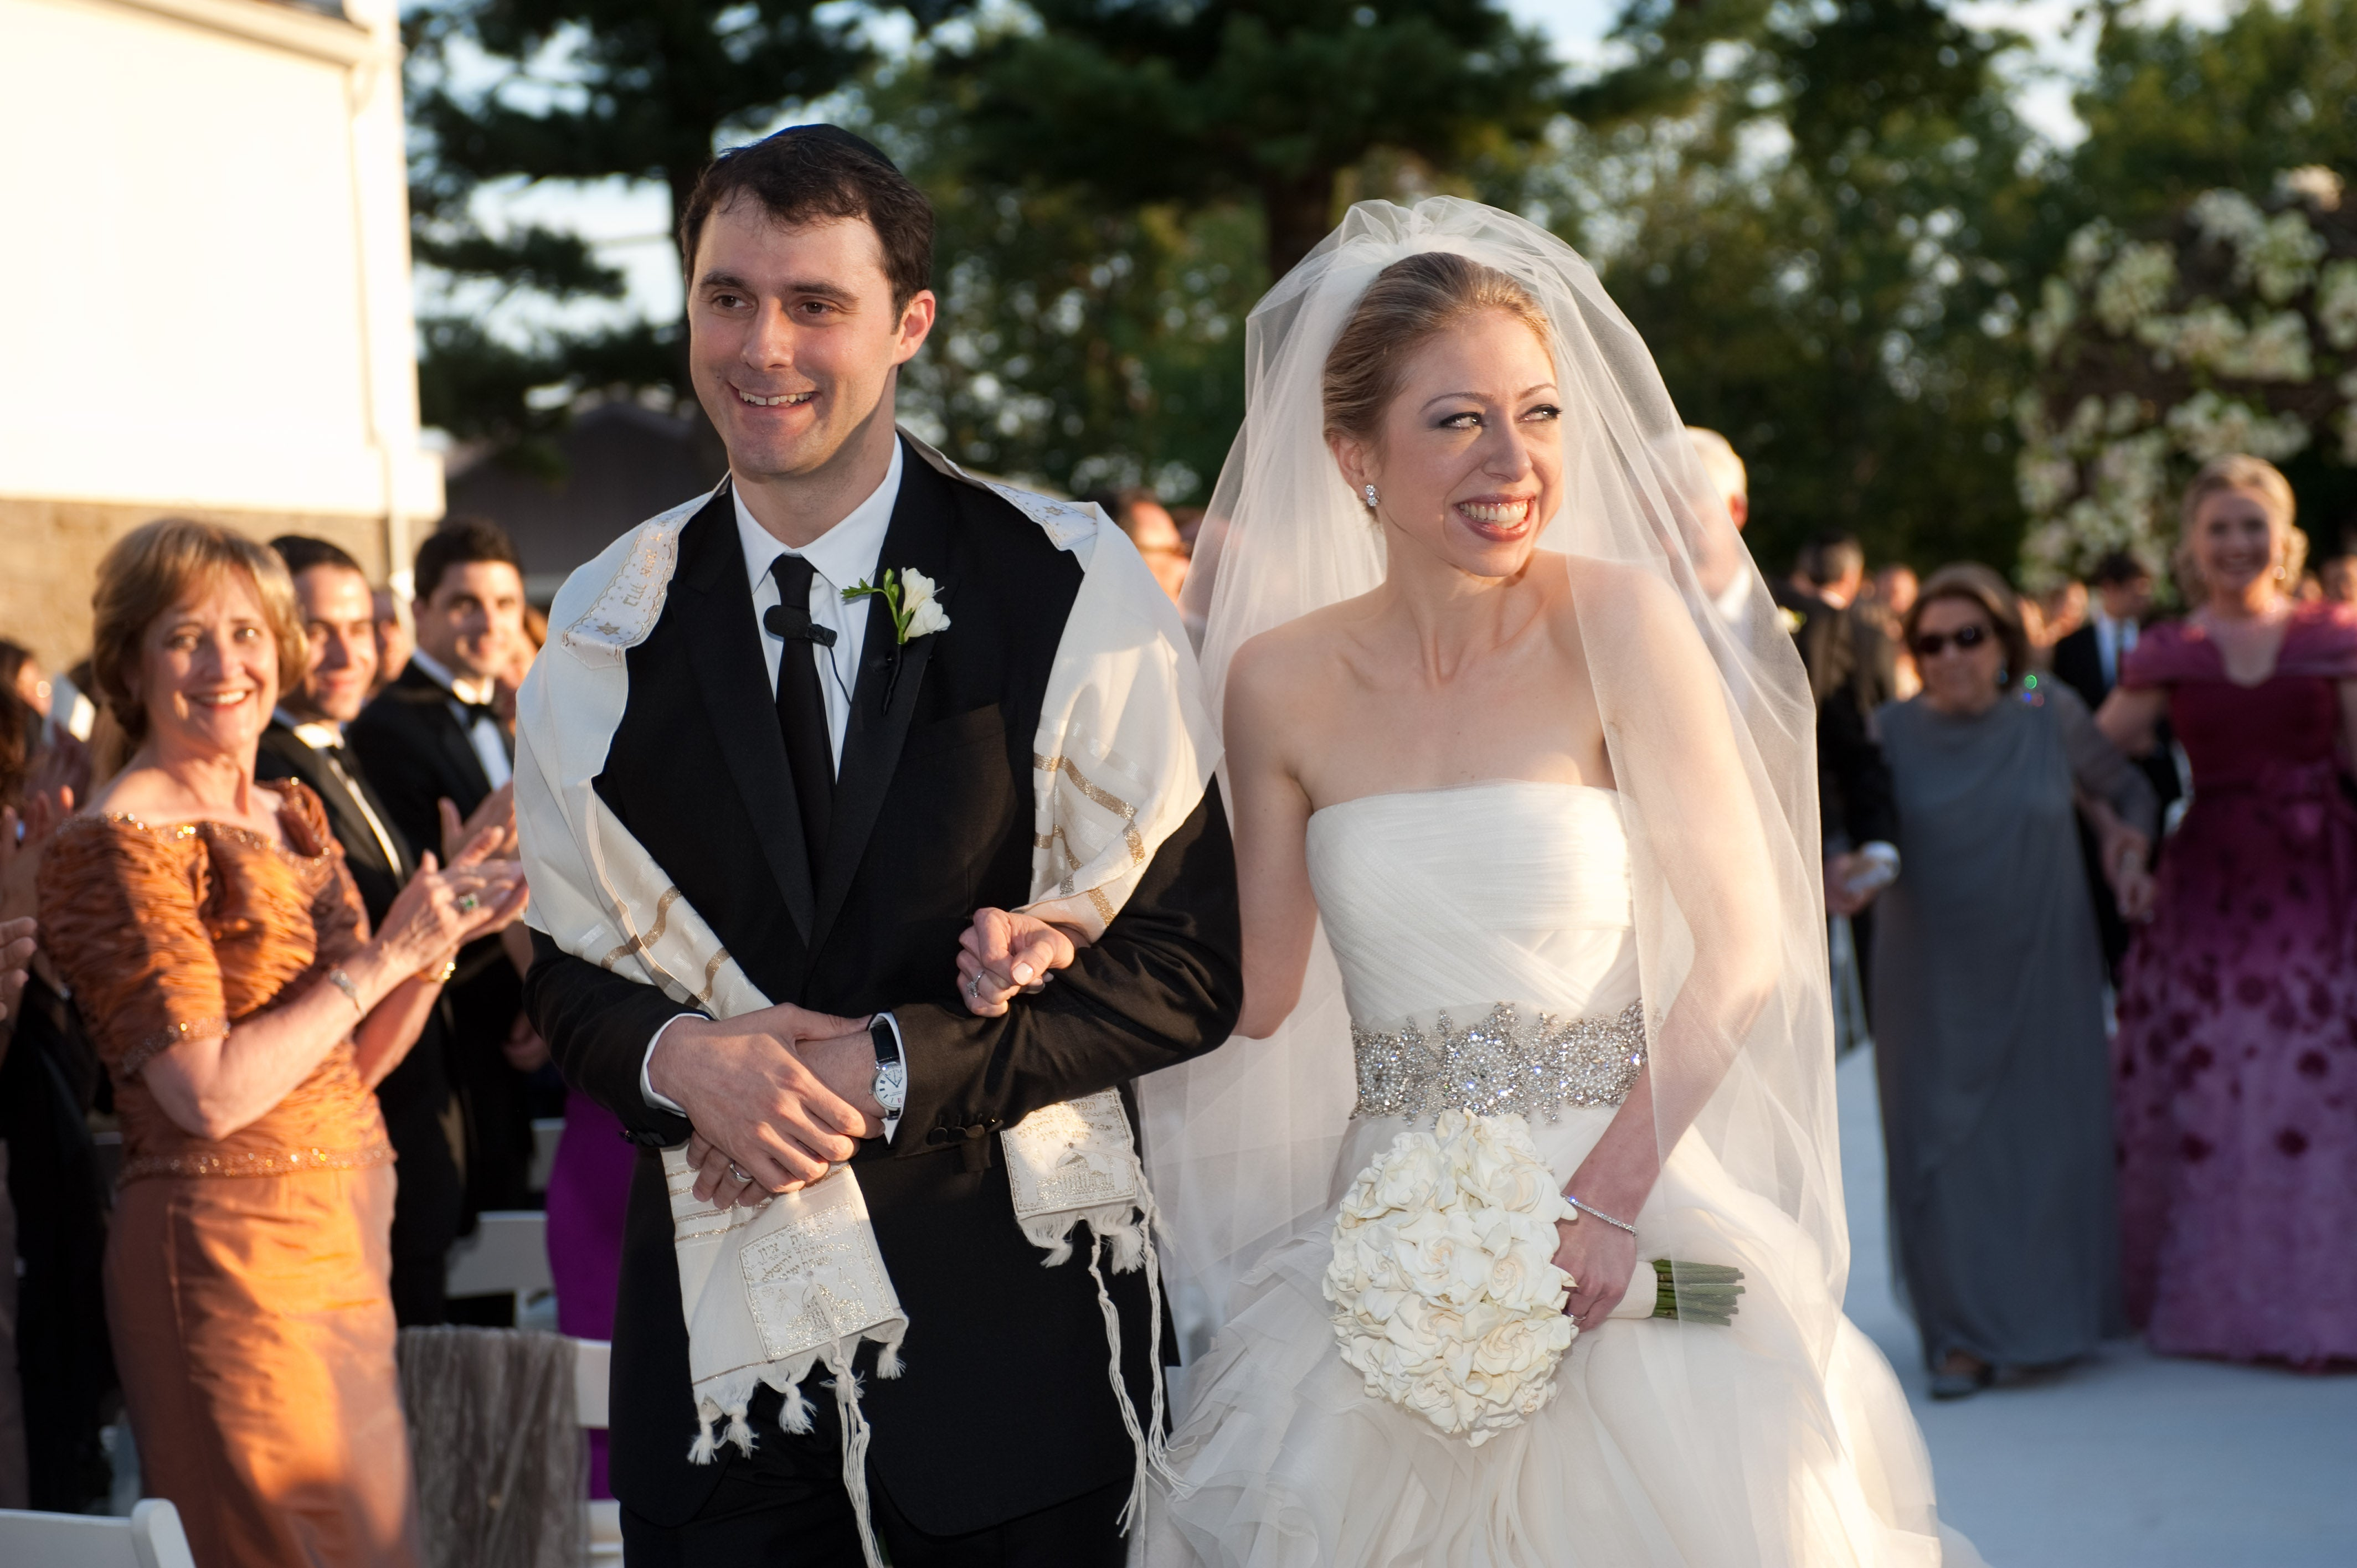 Chelsea Clinton wore an elegant beaded gown designed by Vera Wang.